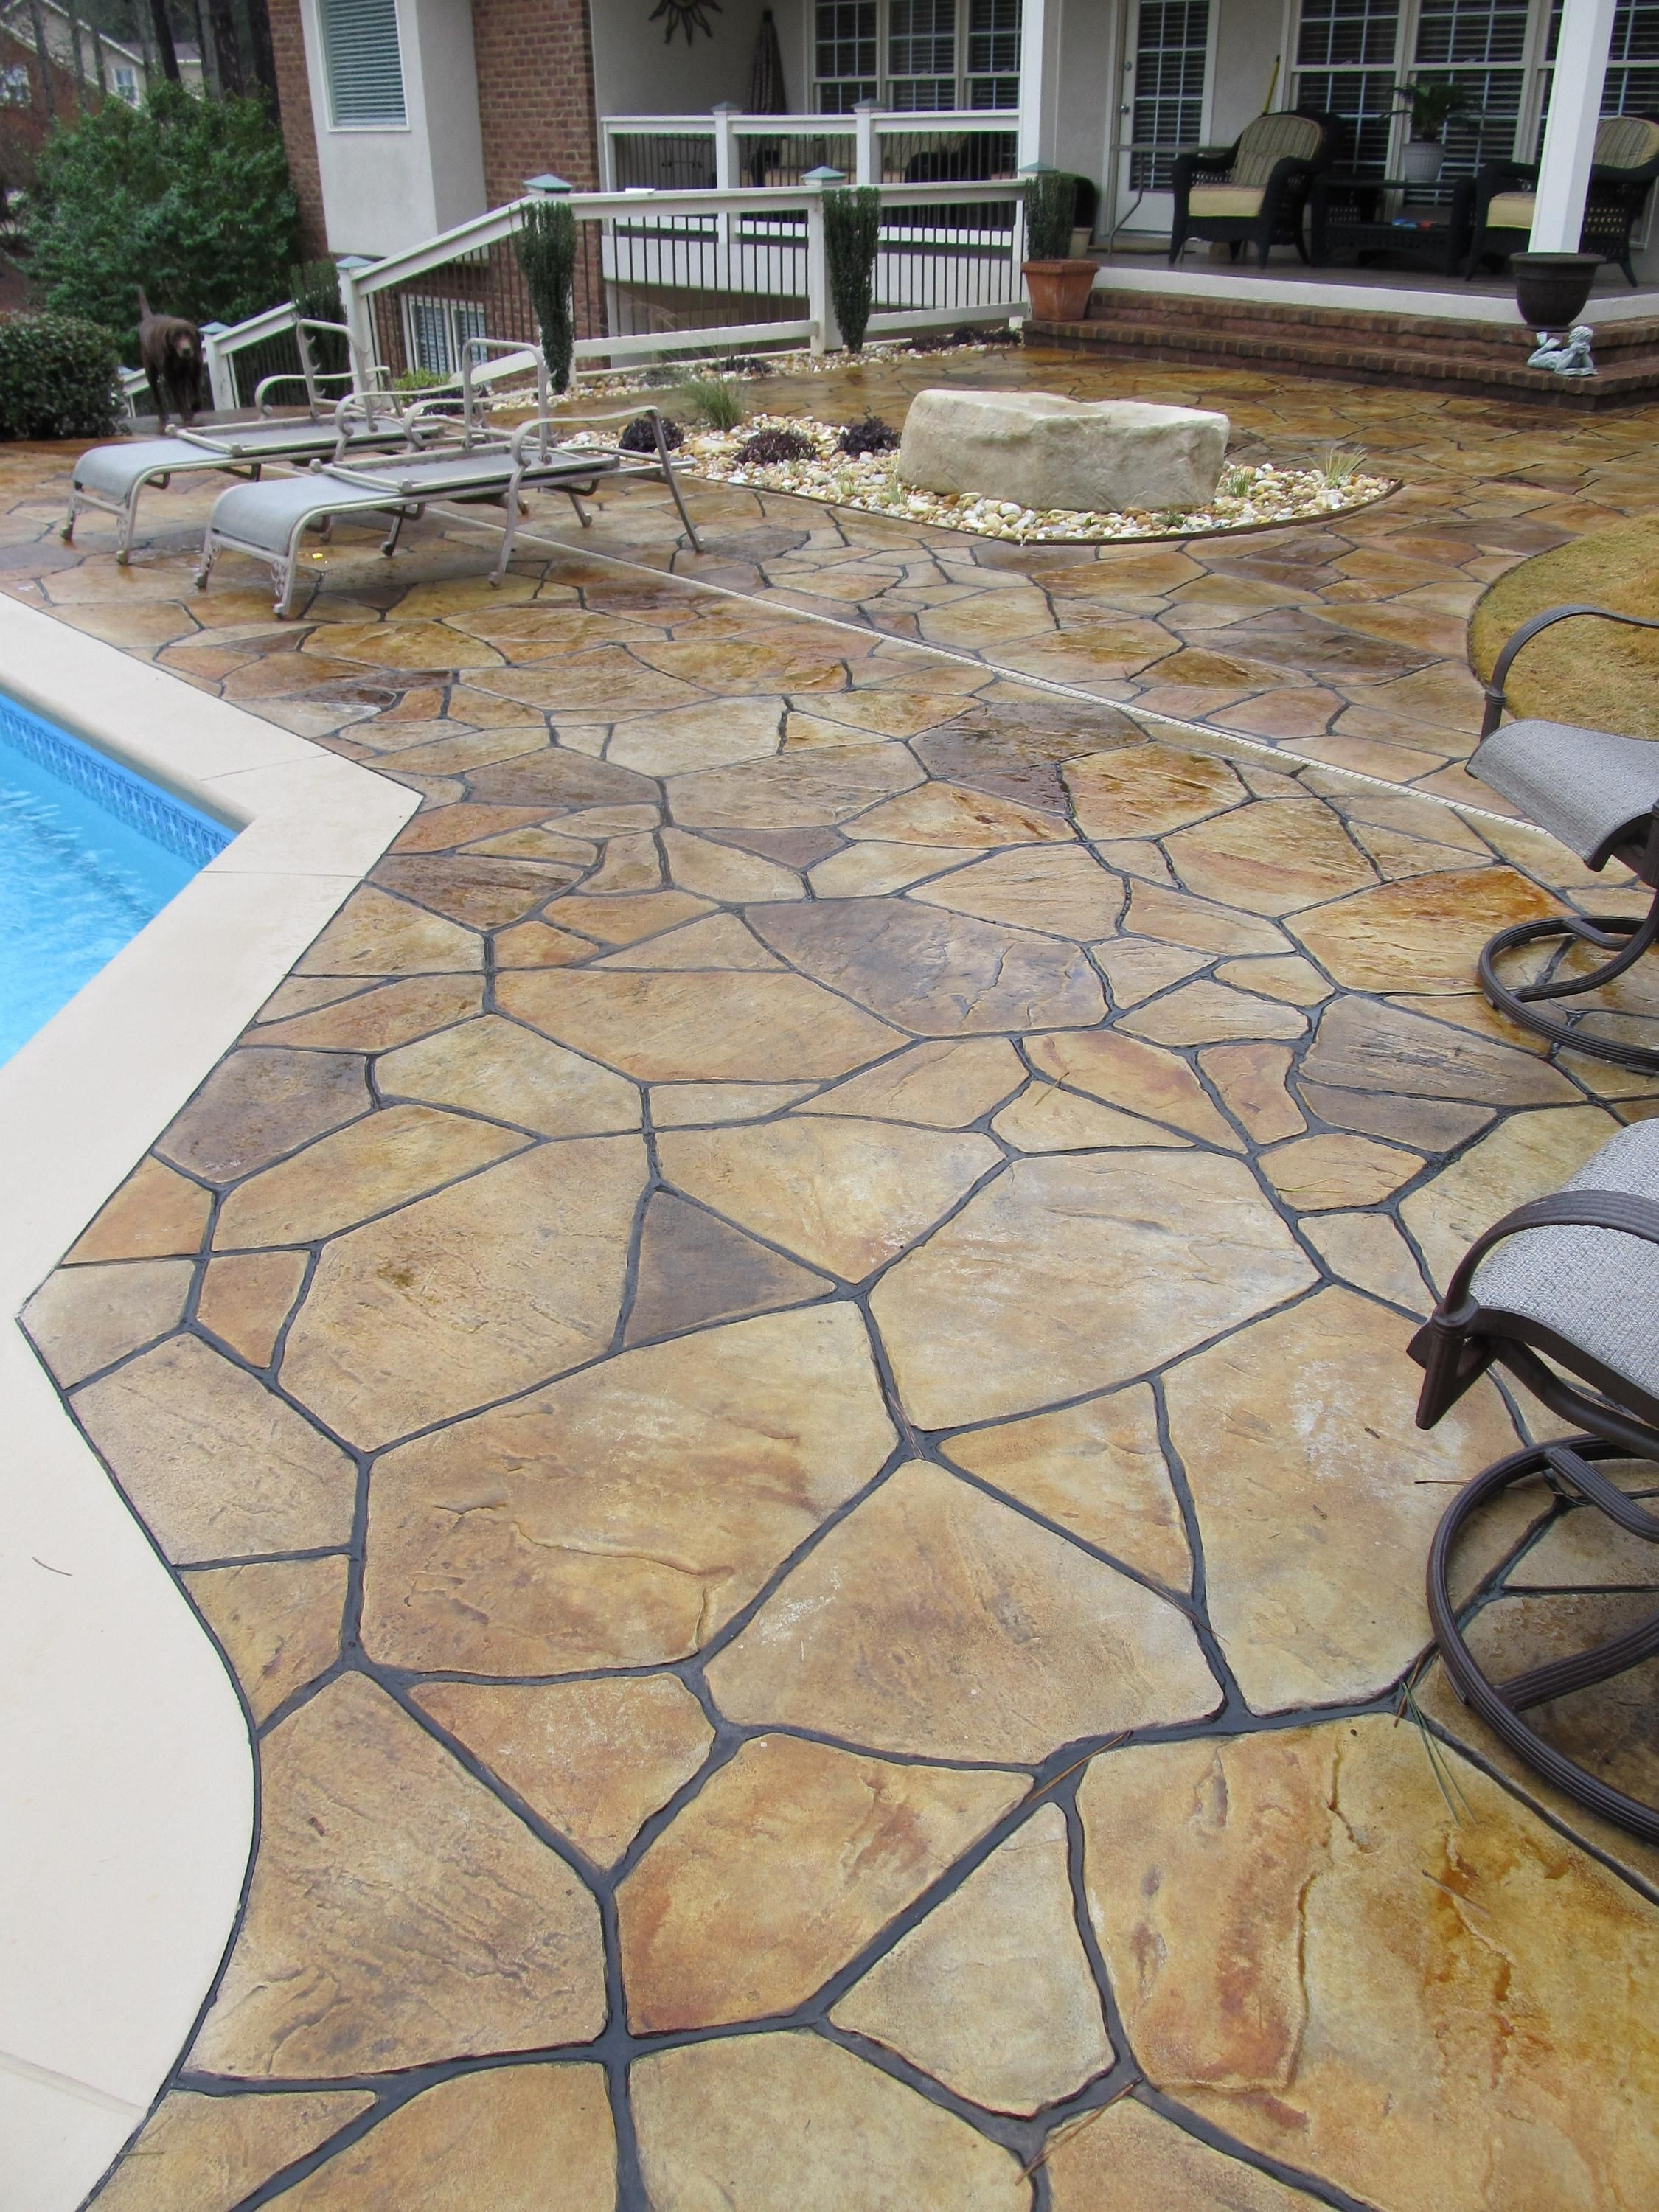 Charming Multi Color Flagstone Overlay Over Existing Pool Deck With Smooth Border